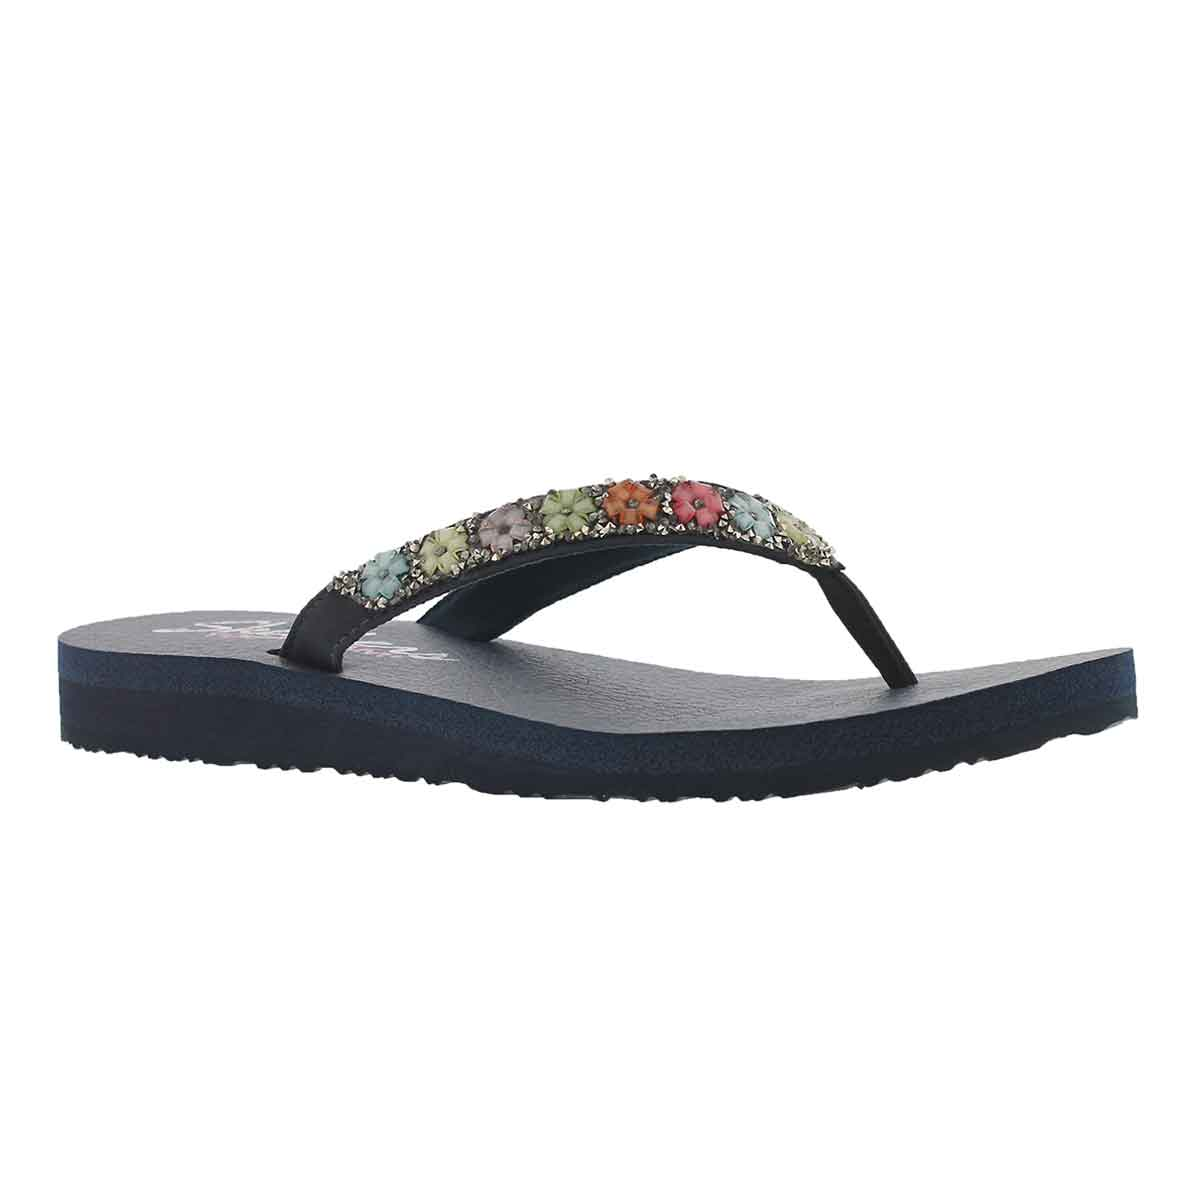 Women's MEDITATION DAISY DELIGHT navy flip flops